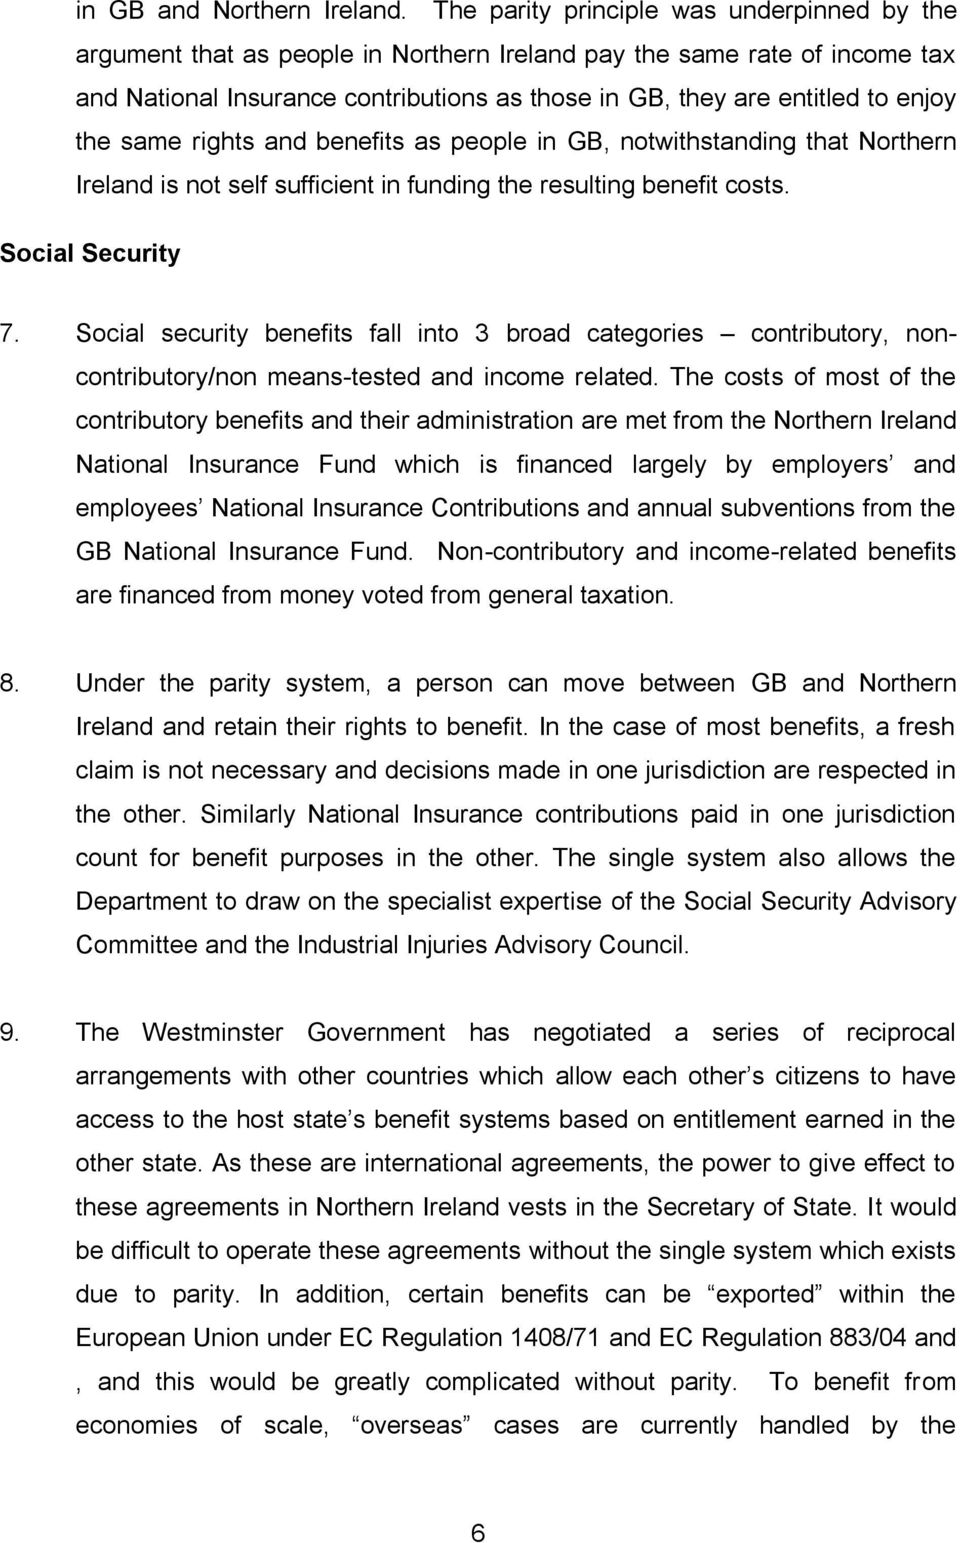 the same rights and benefits as people in GB, notwithstanding that Northern Ireland is not self sufficient in funding the resulting benefit costs. Social Security 7.